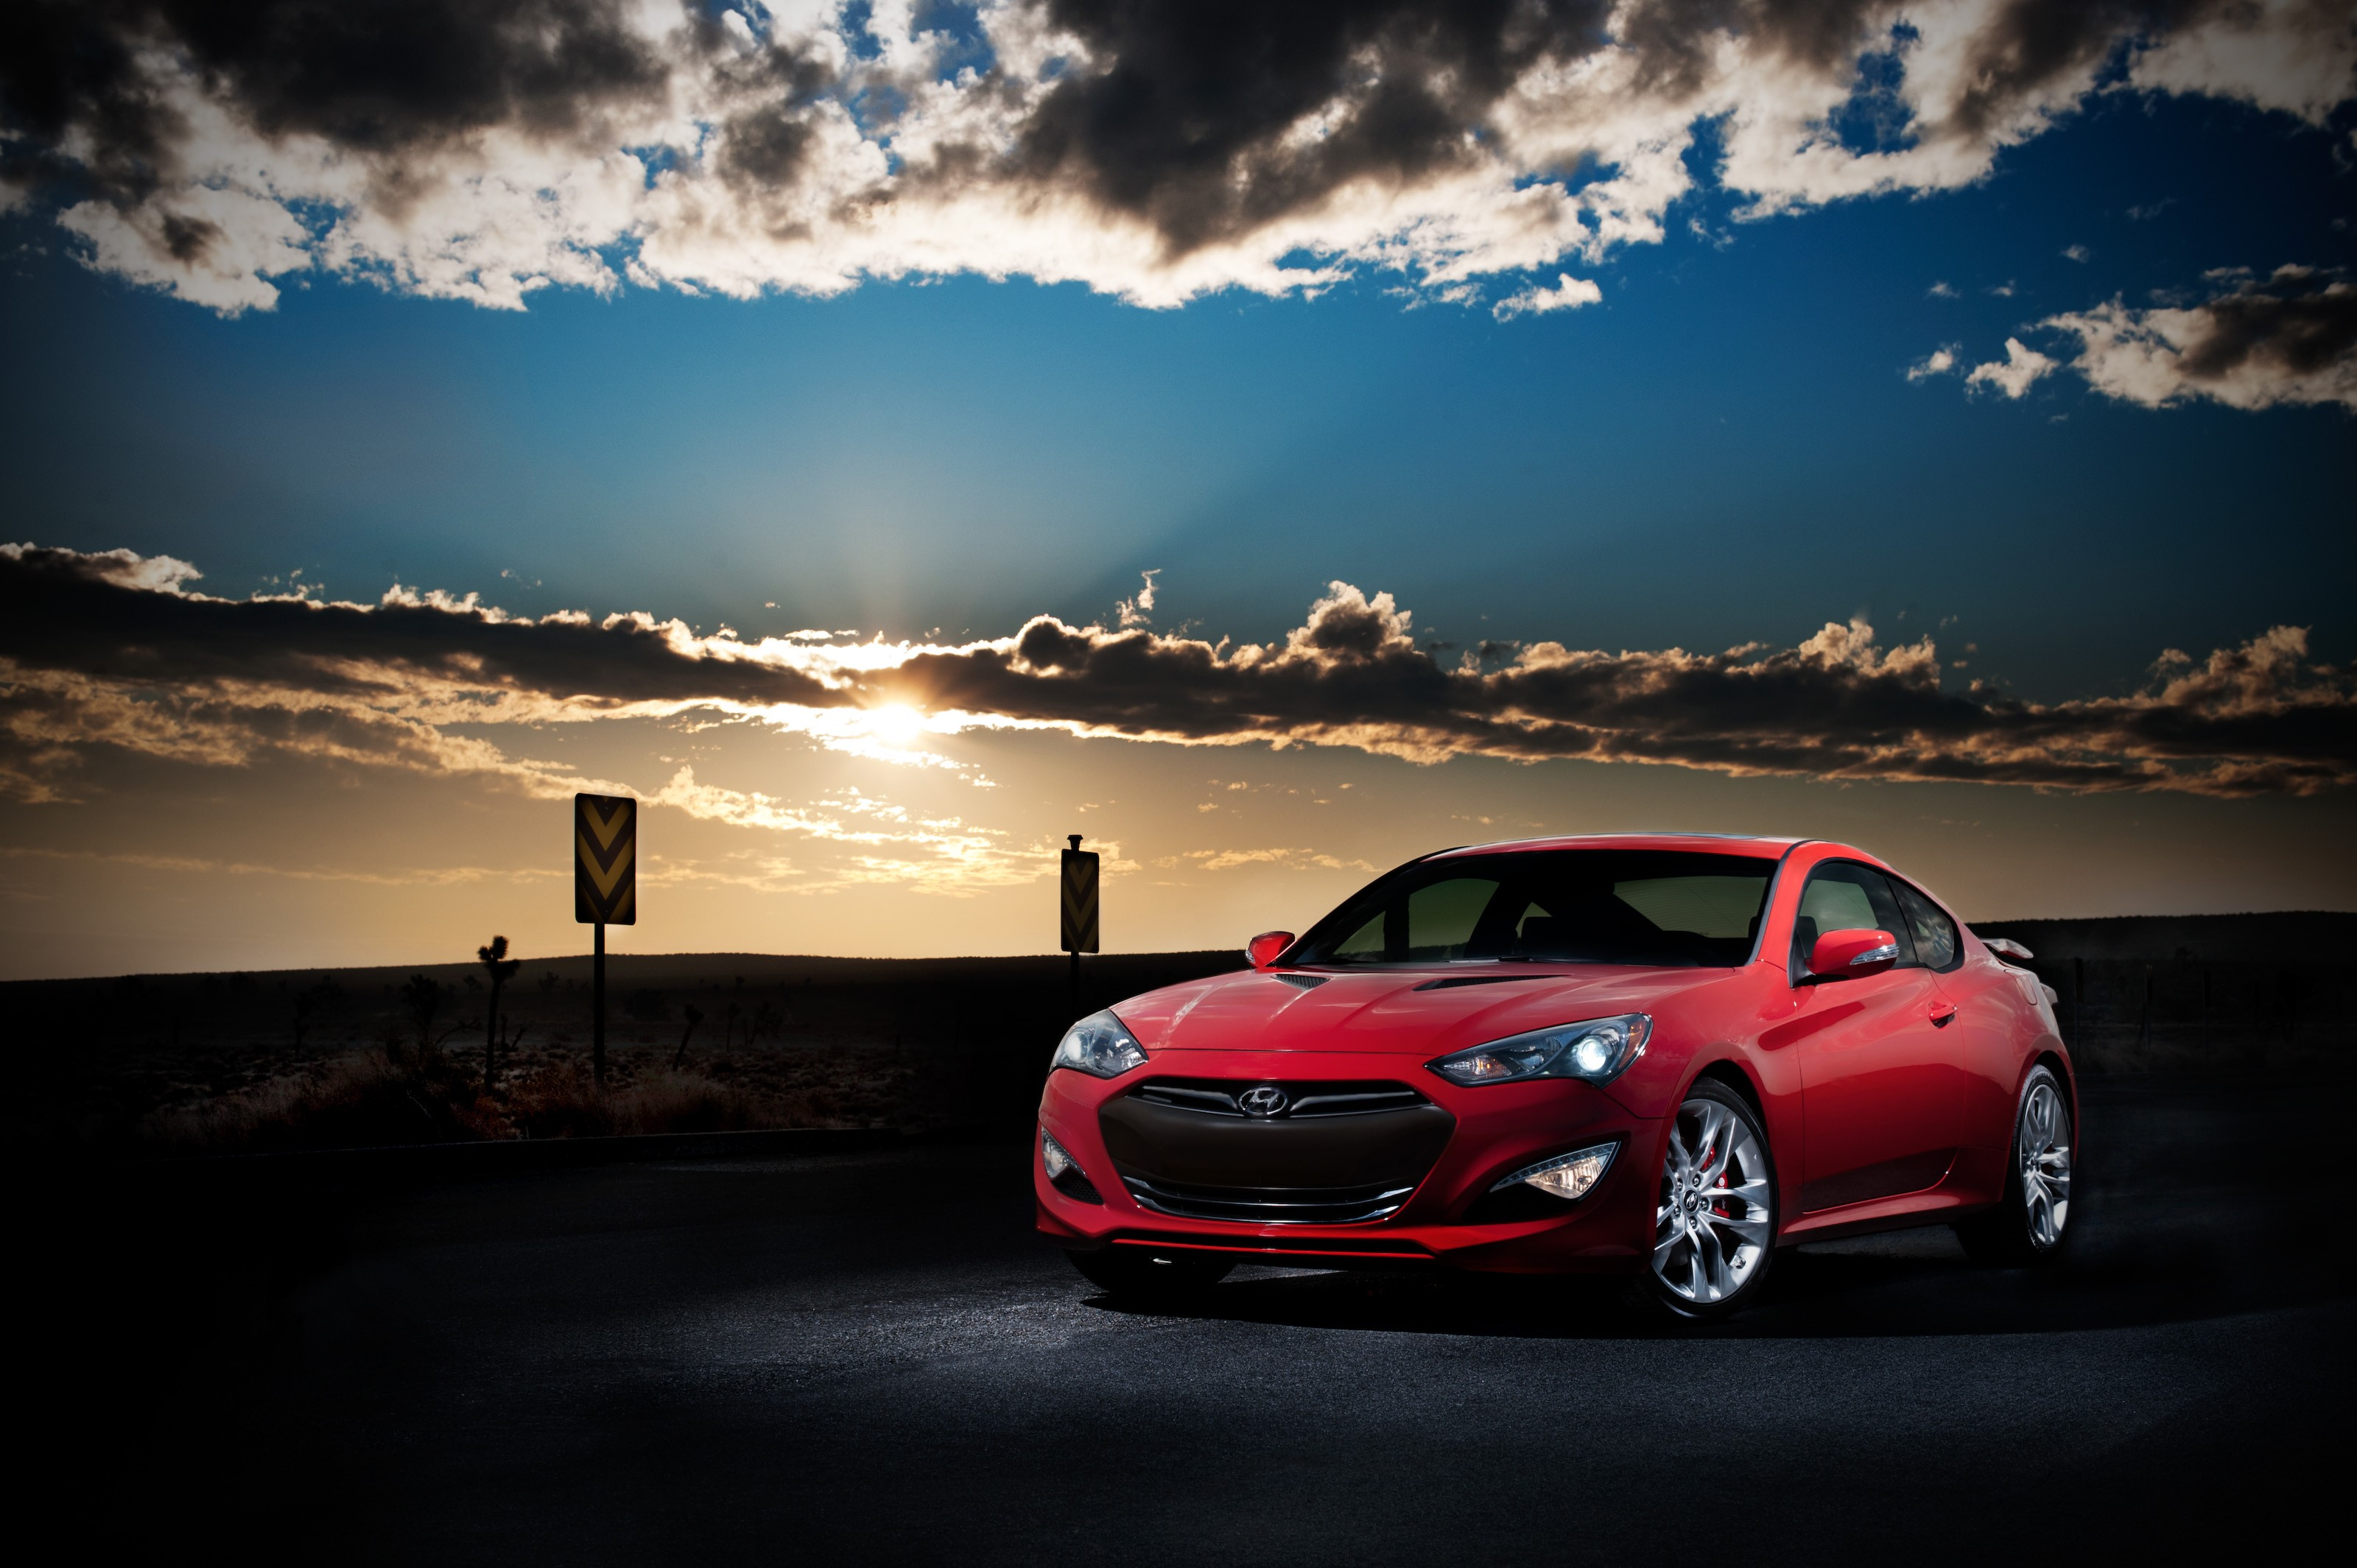 hyundai-genesis-coupe-kicks-the-bucket-successor-in-the-offing_20